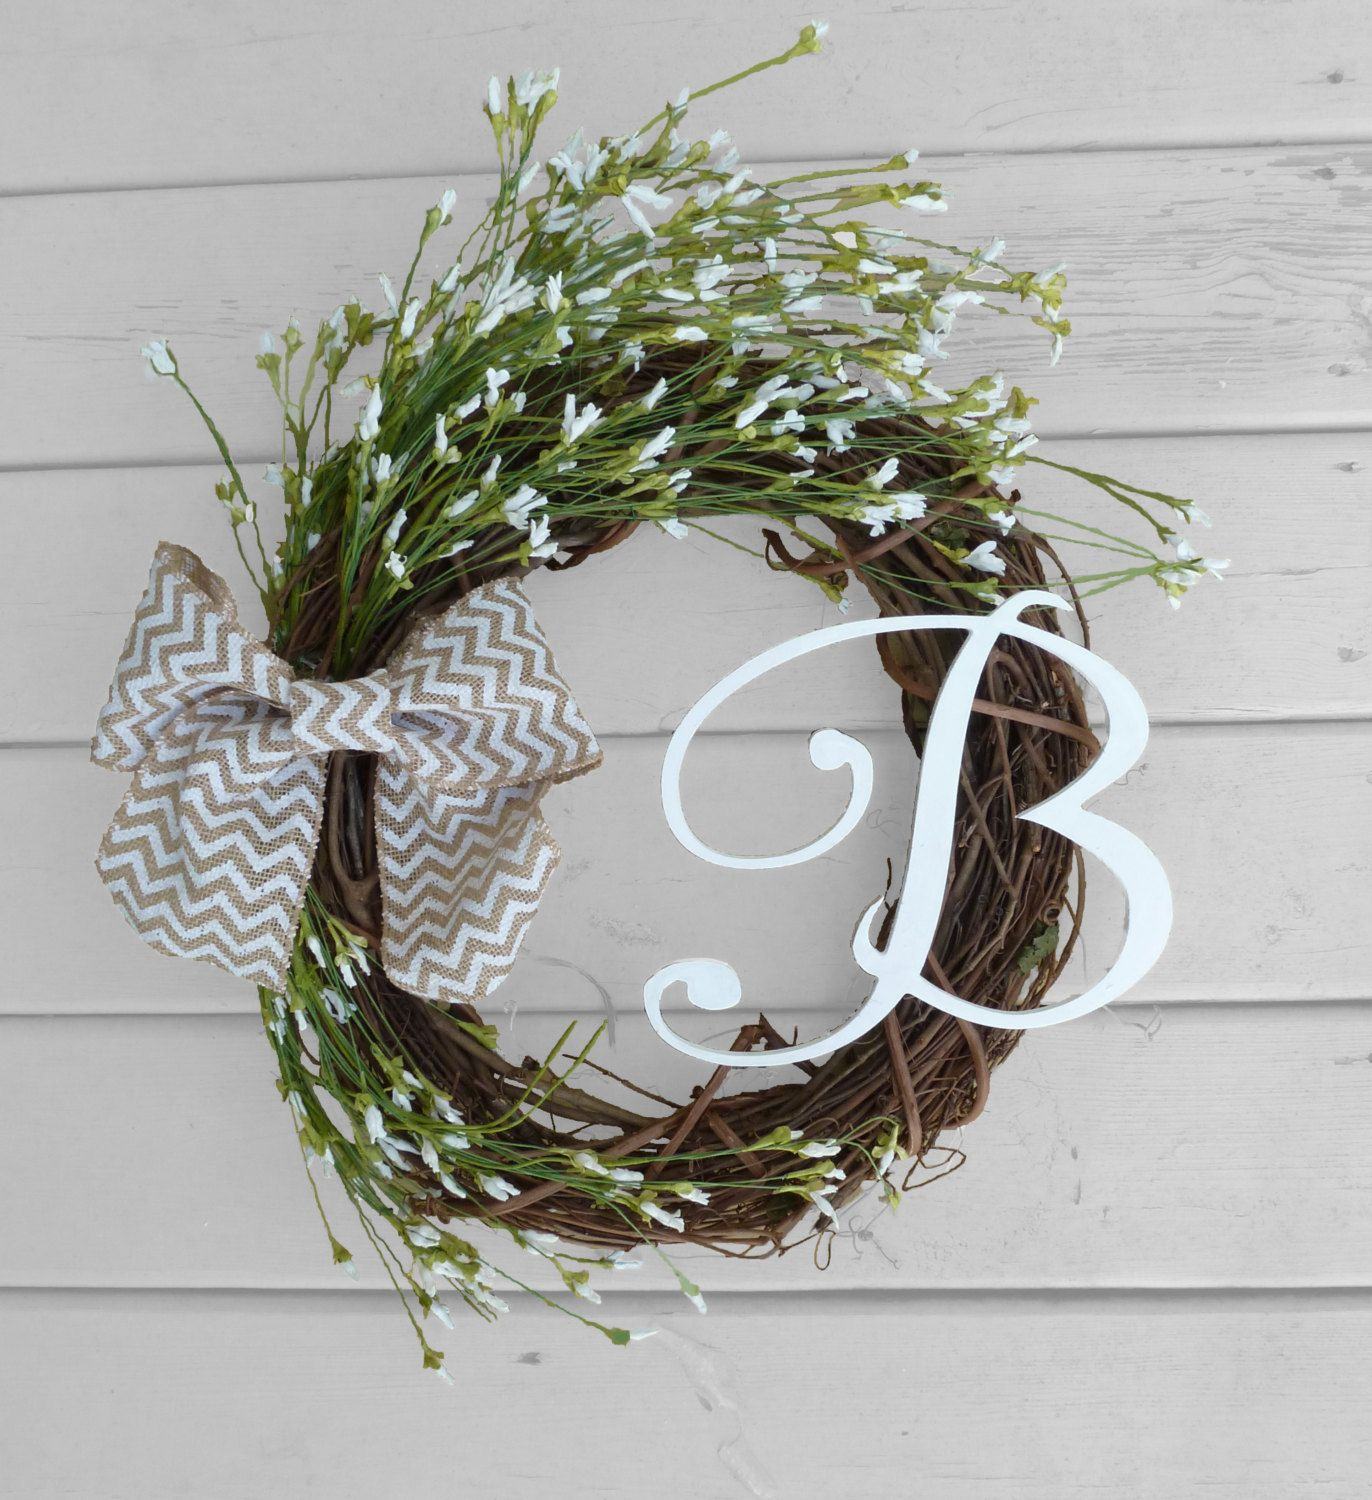 Monogrammed Grapevine Wreath - White Flowers - Chevron Bow - Rustic Decorations - Front Door Decorations - Country Chic - Mothers Day Gift by RefinedWreath on Etsy https://www.etsy.com/listing/222700137/monogrammed-grapevine-wreath-white